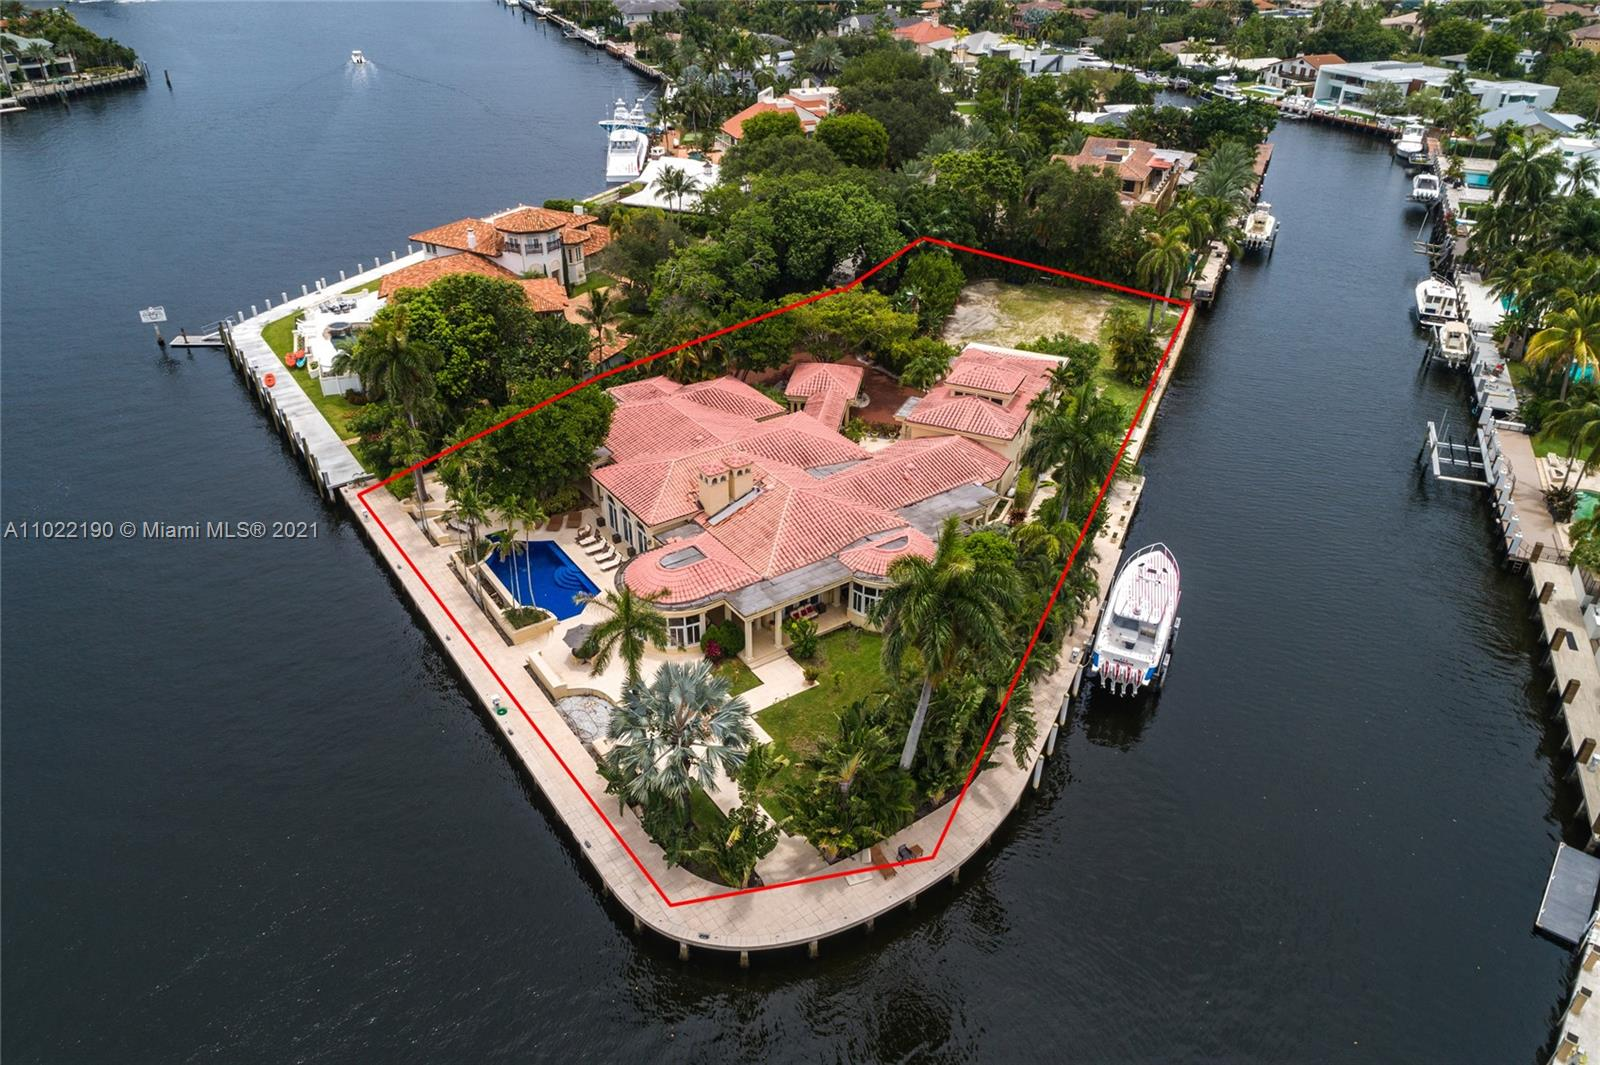 One- of- a- kind private point lot estate in Las Olas. 550 feet of deep and wide protected waterfront on the Rio Barcelona. Can easily fit a mega-yacht of 200 feet or more. Sitting on 1.14 secluded acres, located on the most desired street in Las Olas. This home has 7 bedrooms, 7 1/2 baths and it offers 10,000 square feet of European style and elegance, Soaring Ceilings, large fire place, billiards room, bar and lounge. Outside is a semi-enclosed lounge and outdoor dining area overlooking the water and gardens. The kitchen is designed for a professional chef. The huge first floor master suite and private office open to the pool. 2300 Aqua Vista offers quick ocean access and walking distance to the beach and Las Olas night life.